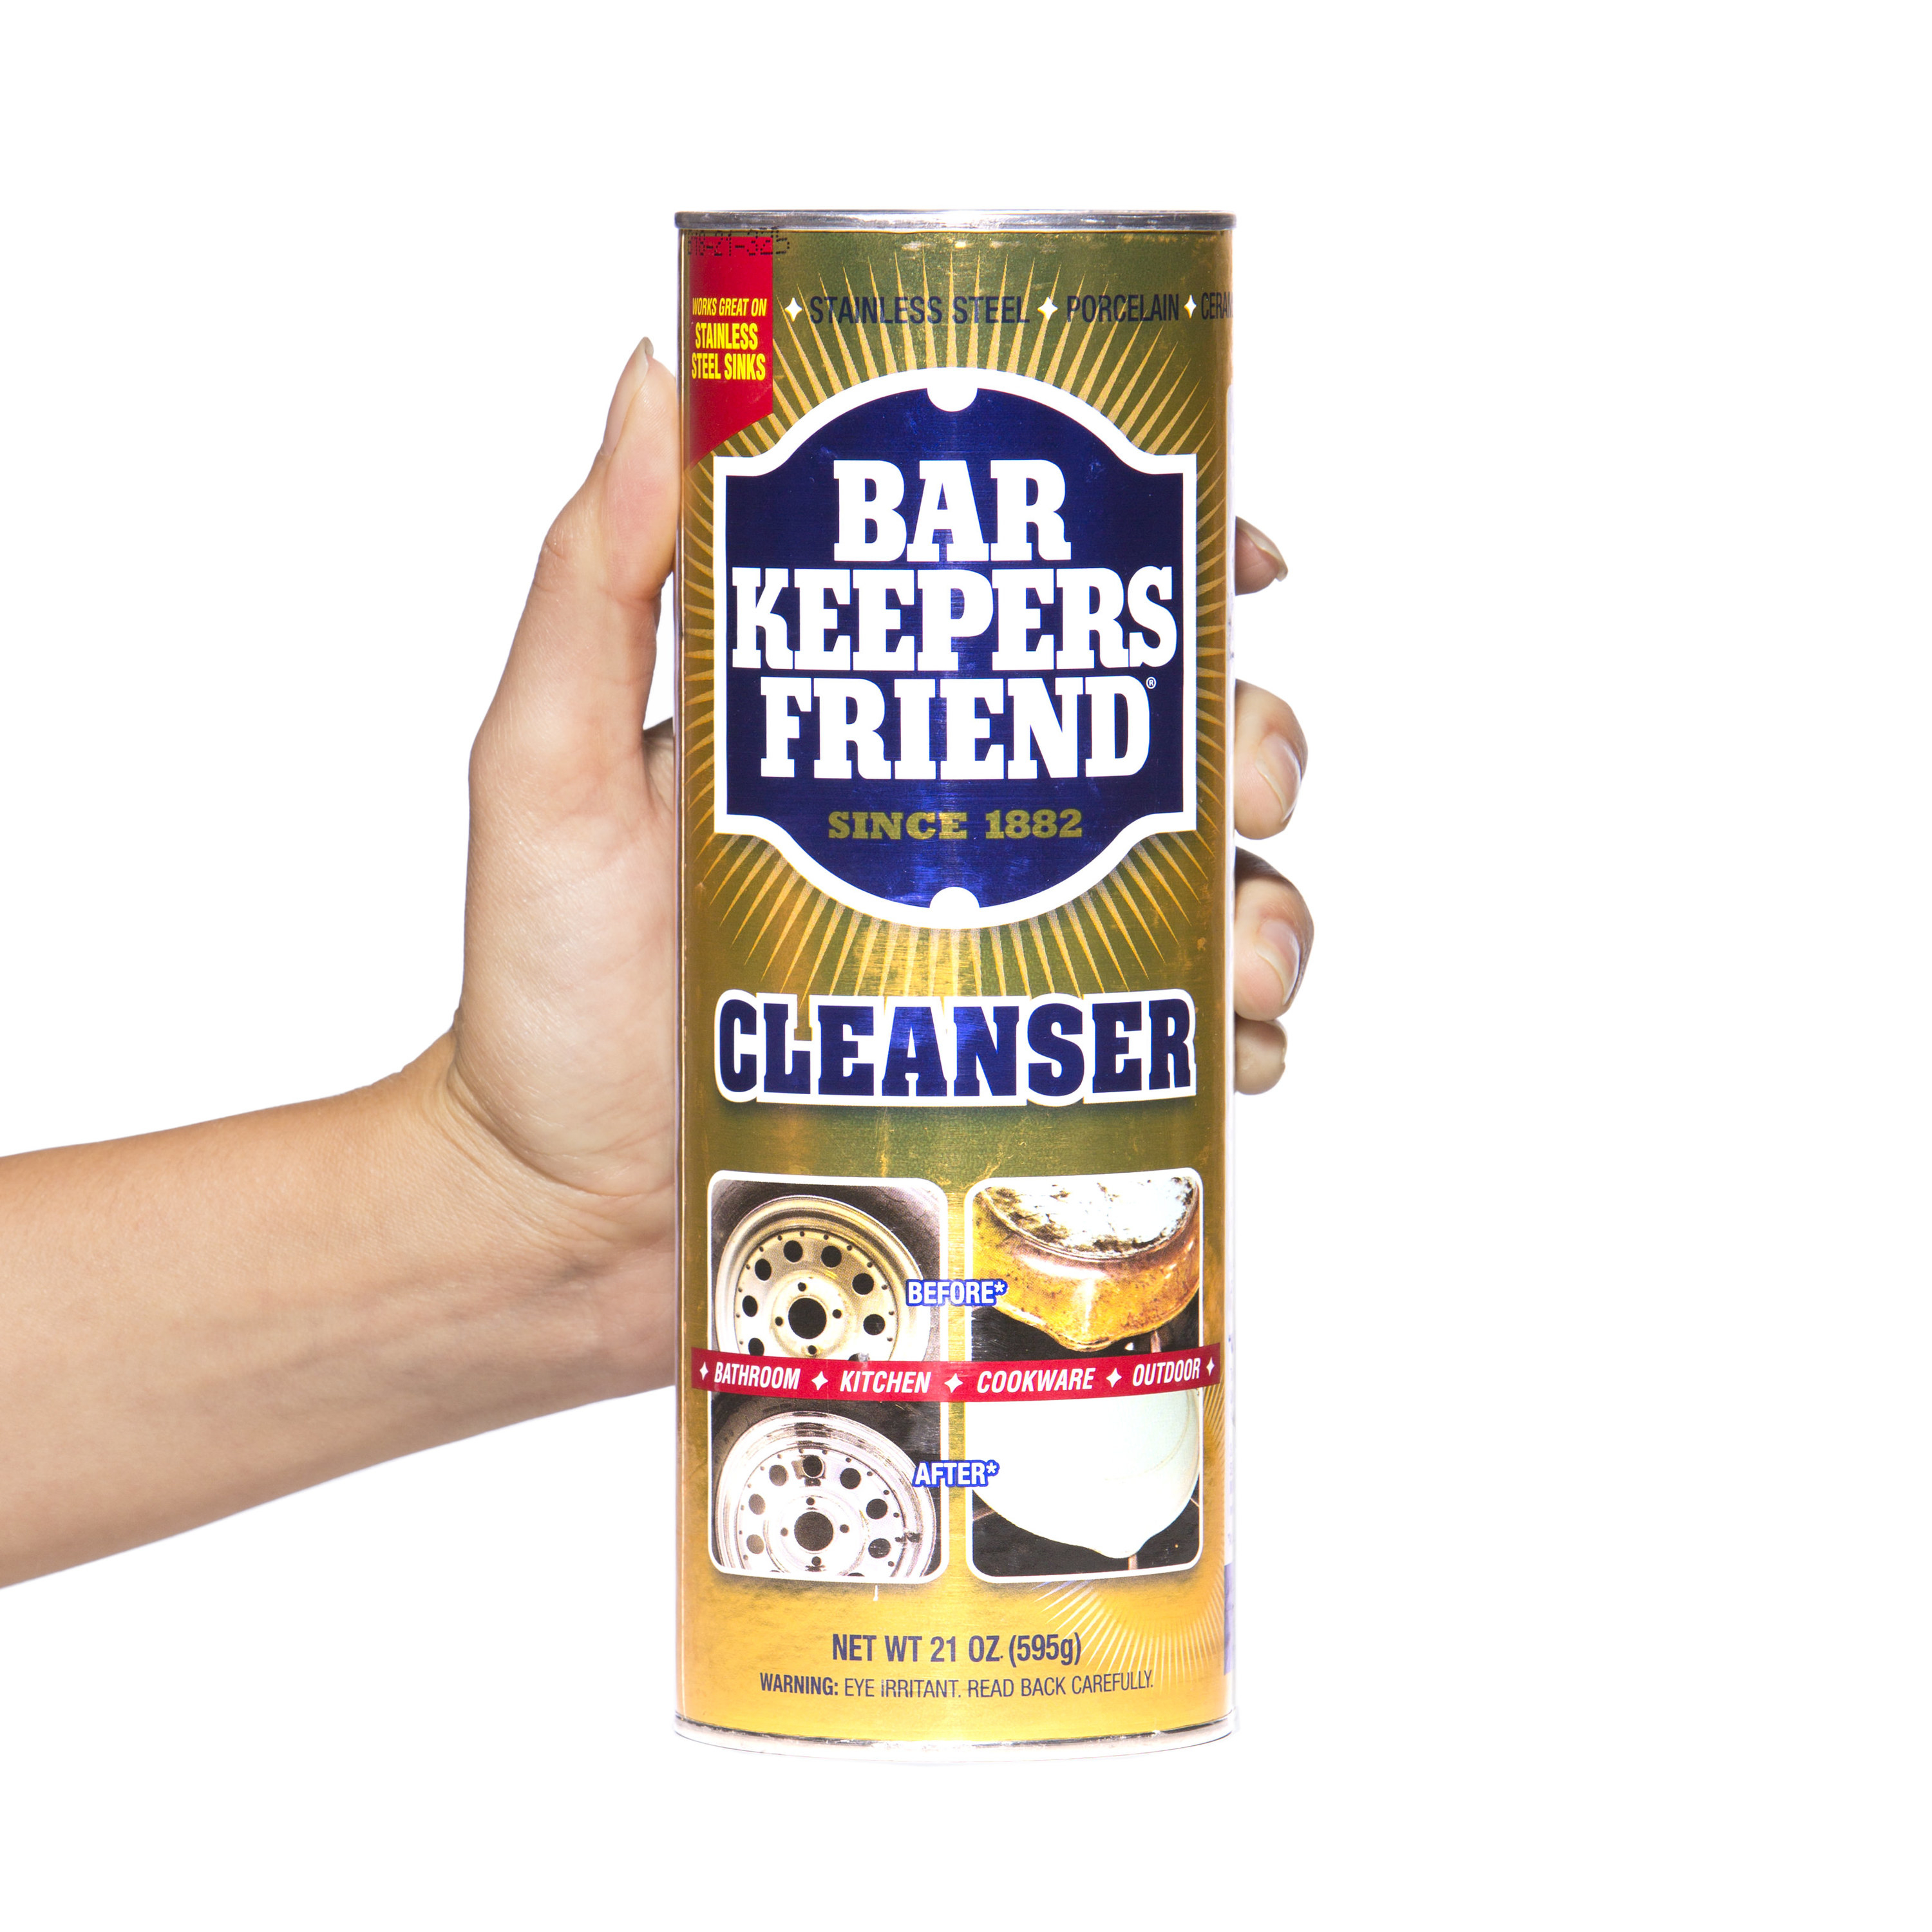 A 21-ounce can of Bar Keeper's Friend cleanser that can be used in the bathroom, kitchen, on cookware, or outdoors